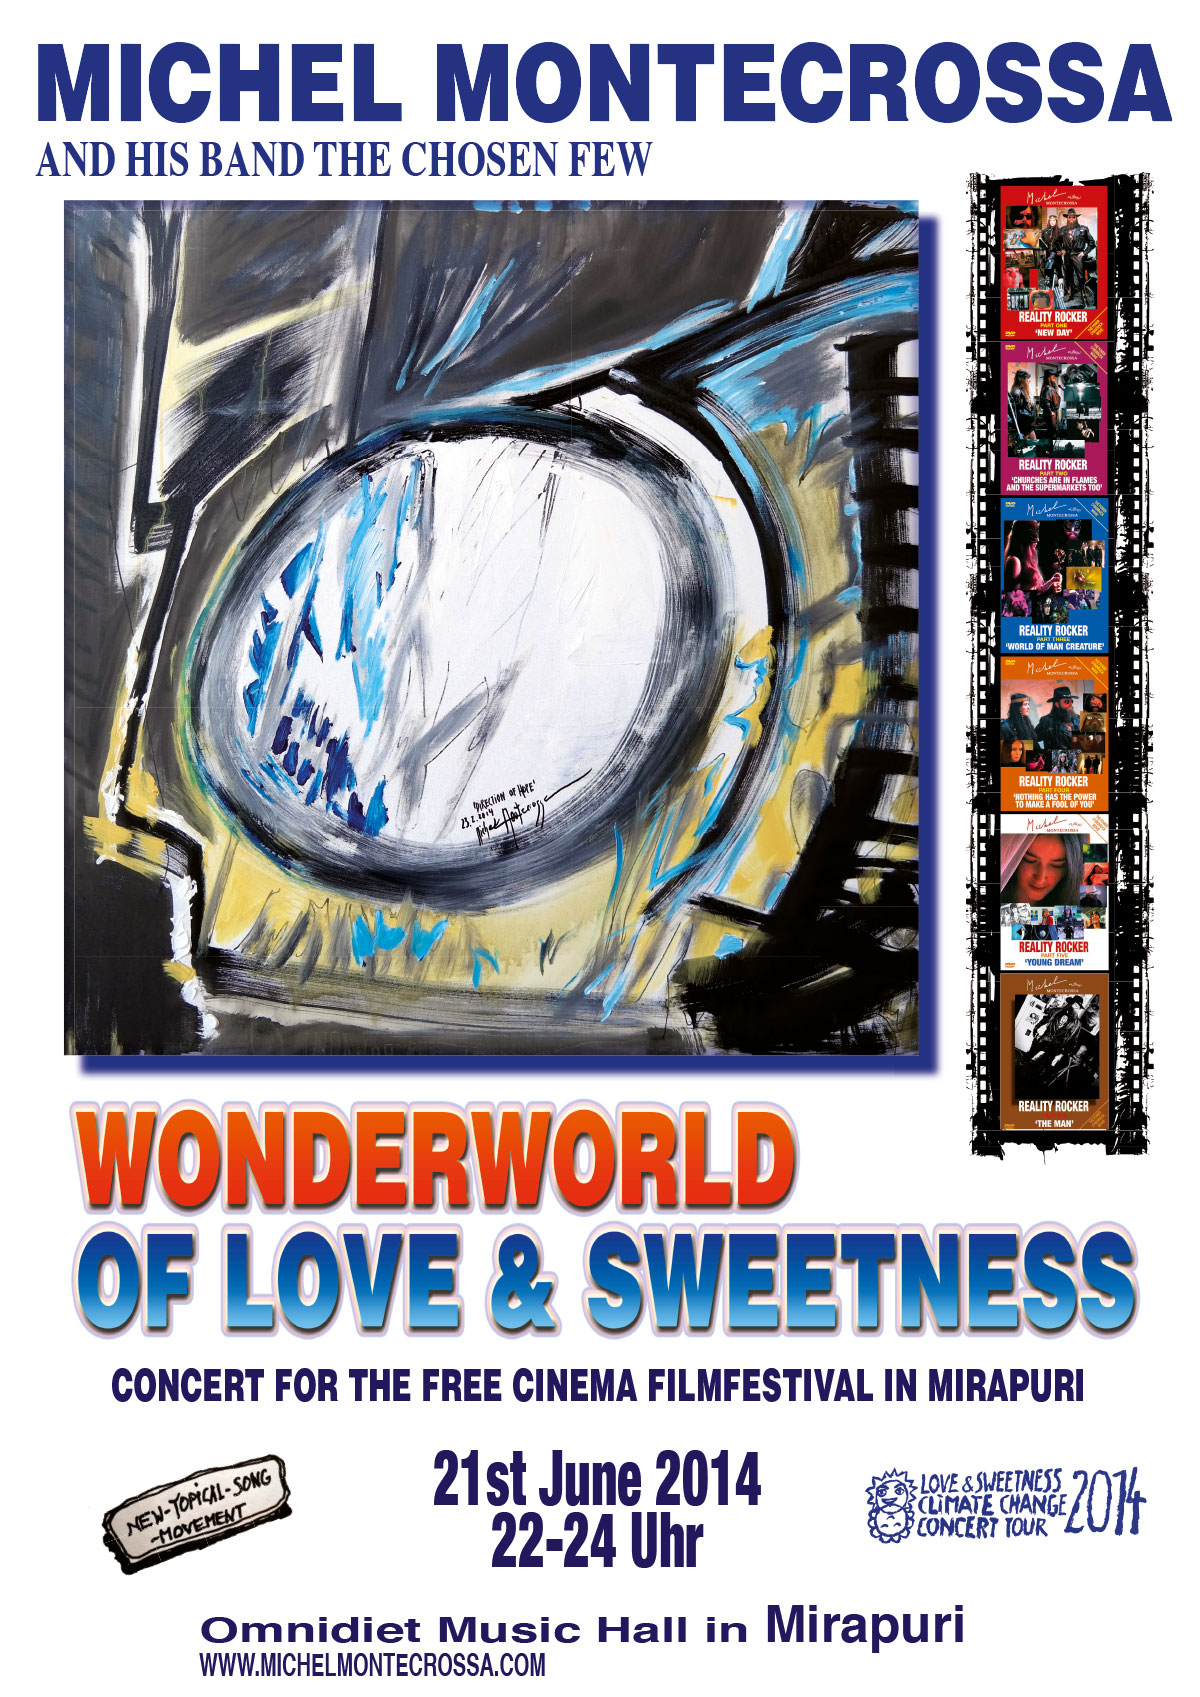 Wonderworld Of Love & Sweetness Concert